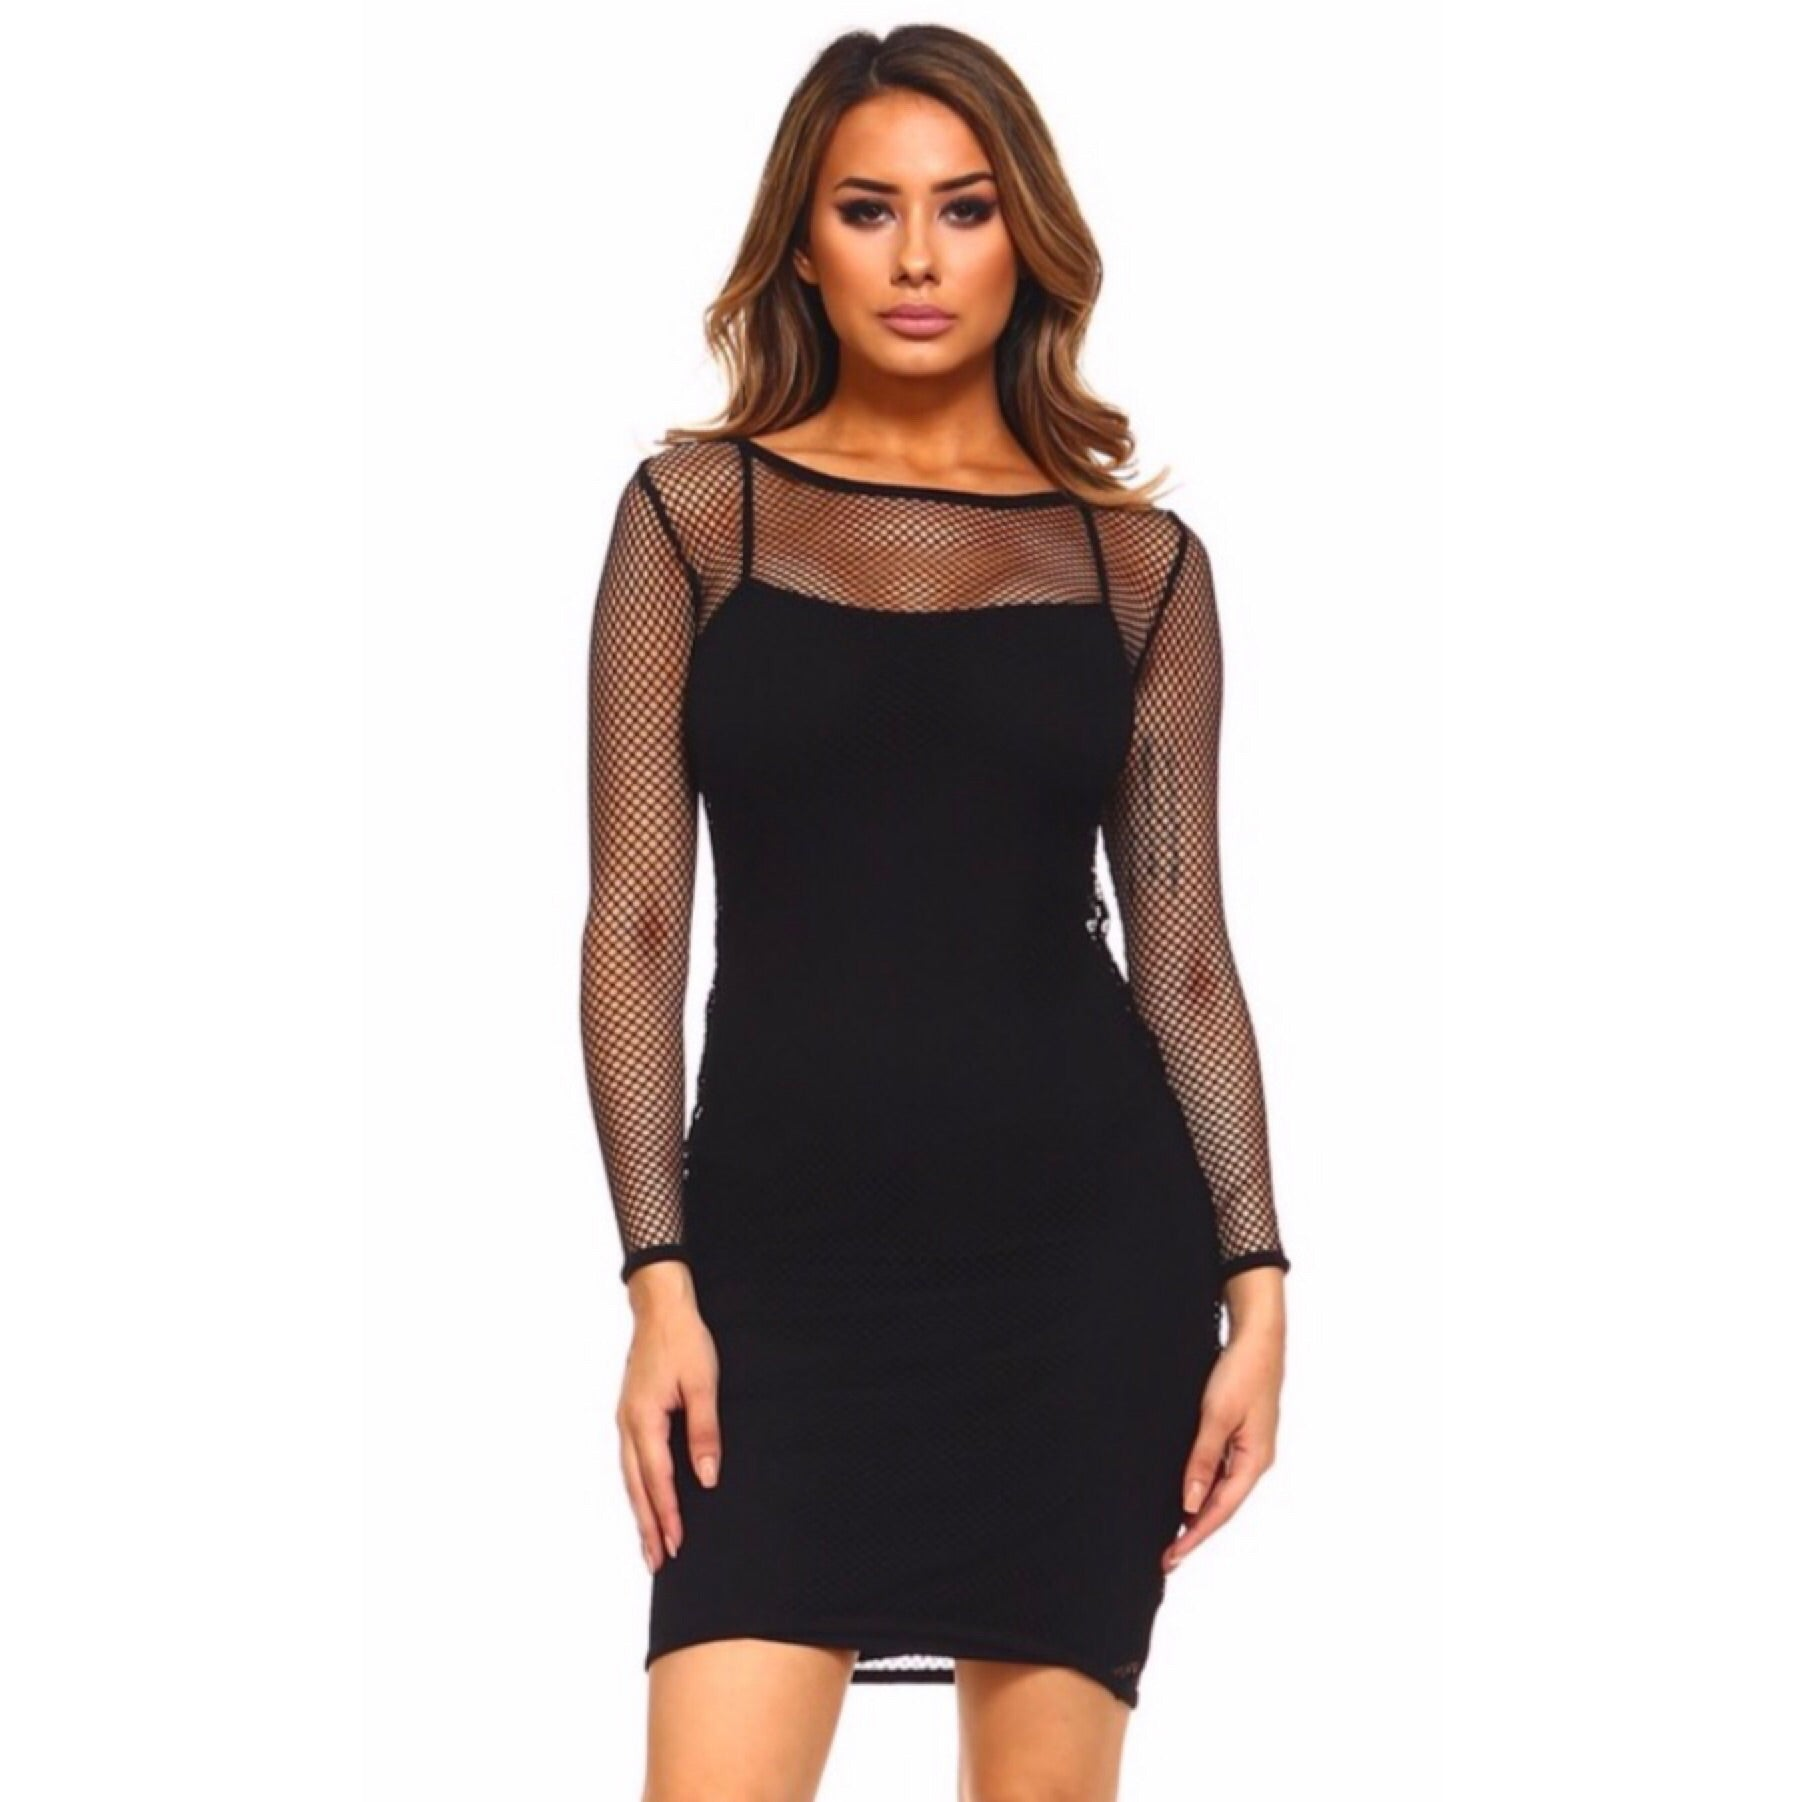 Samantha Black Mini Dress